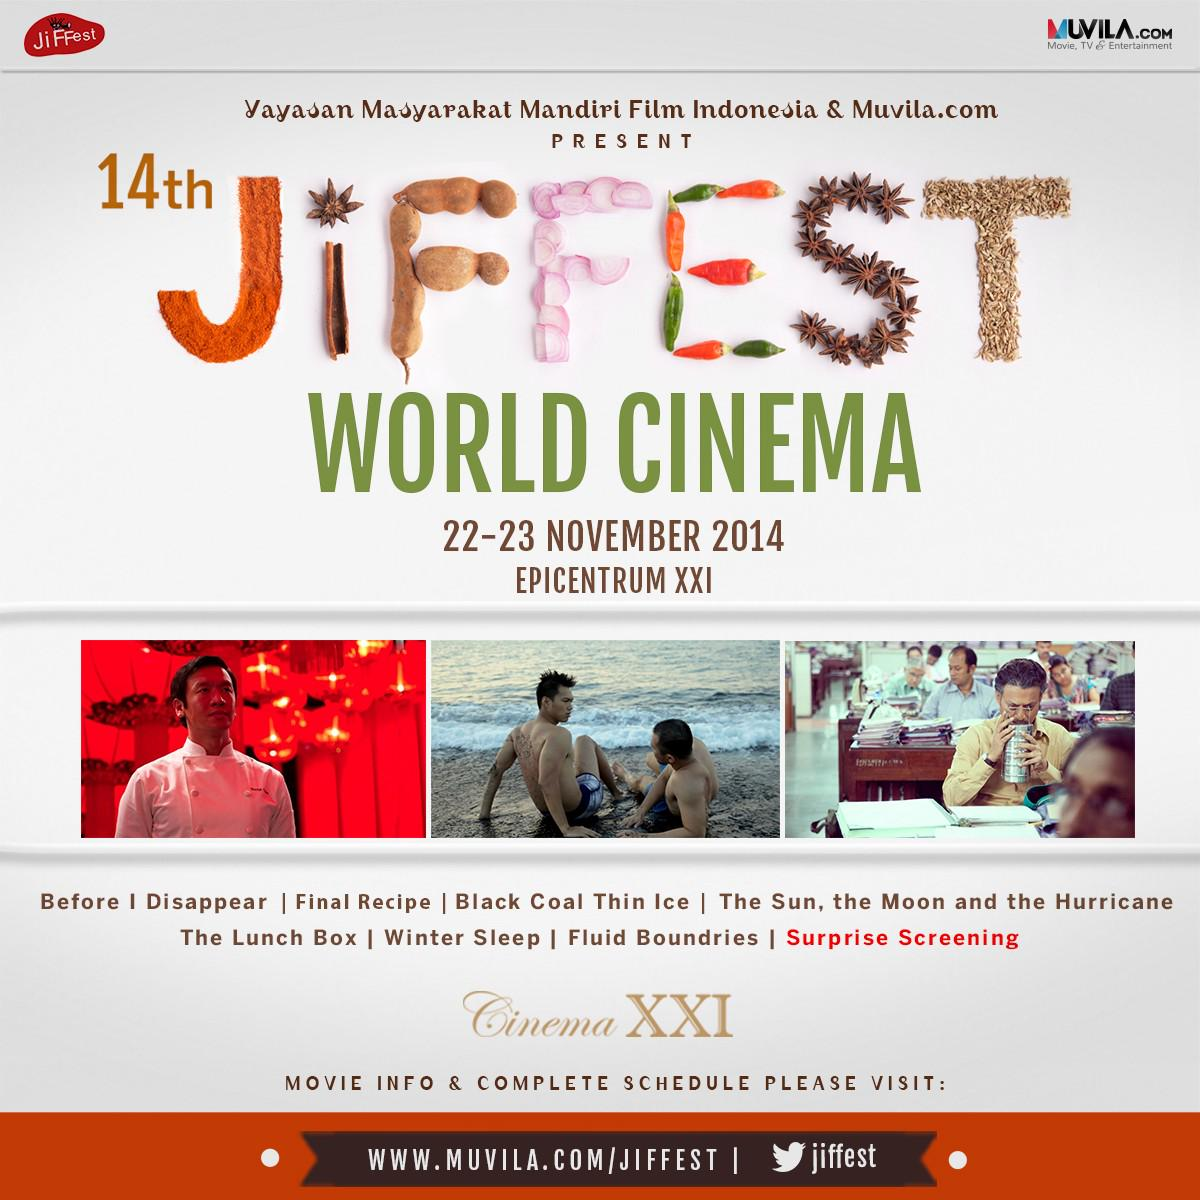 Ini jadwal World Cinema hari kedua di @cinema21 Epicentrum #JiFFest14 http://t.co/dnjMSpDbsm